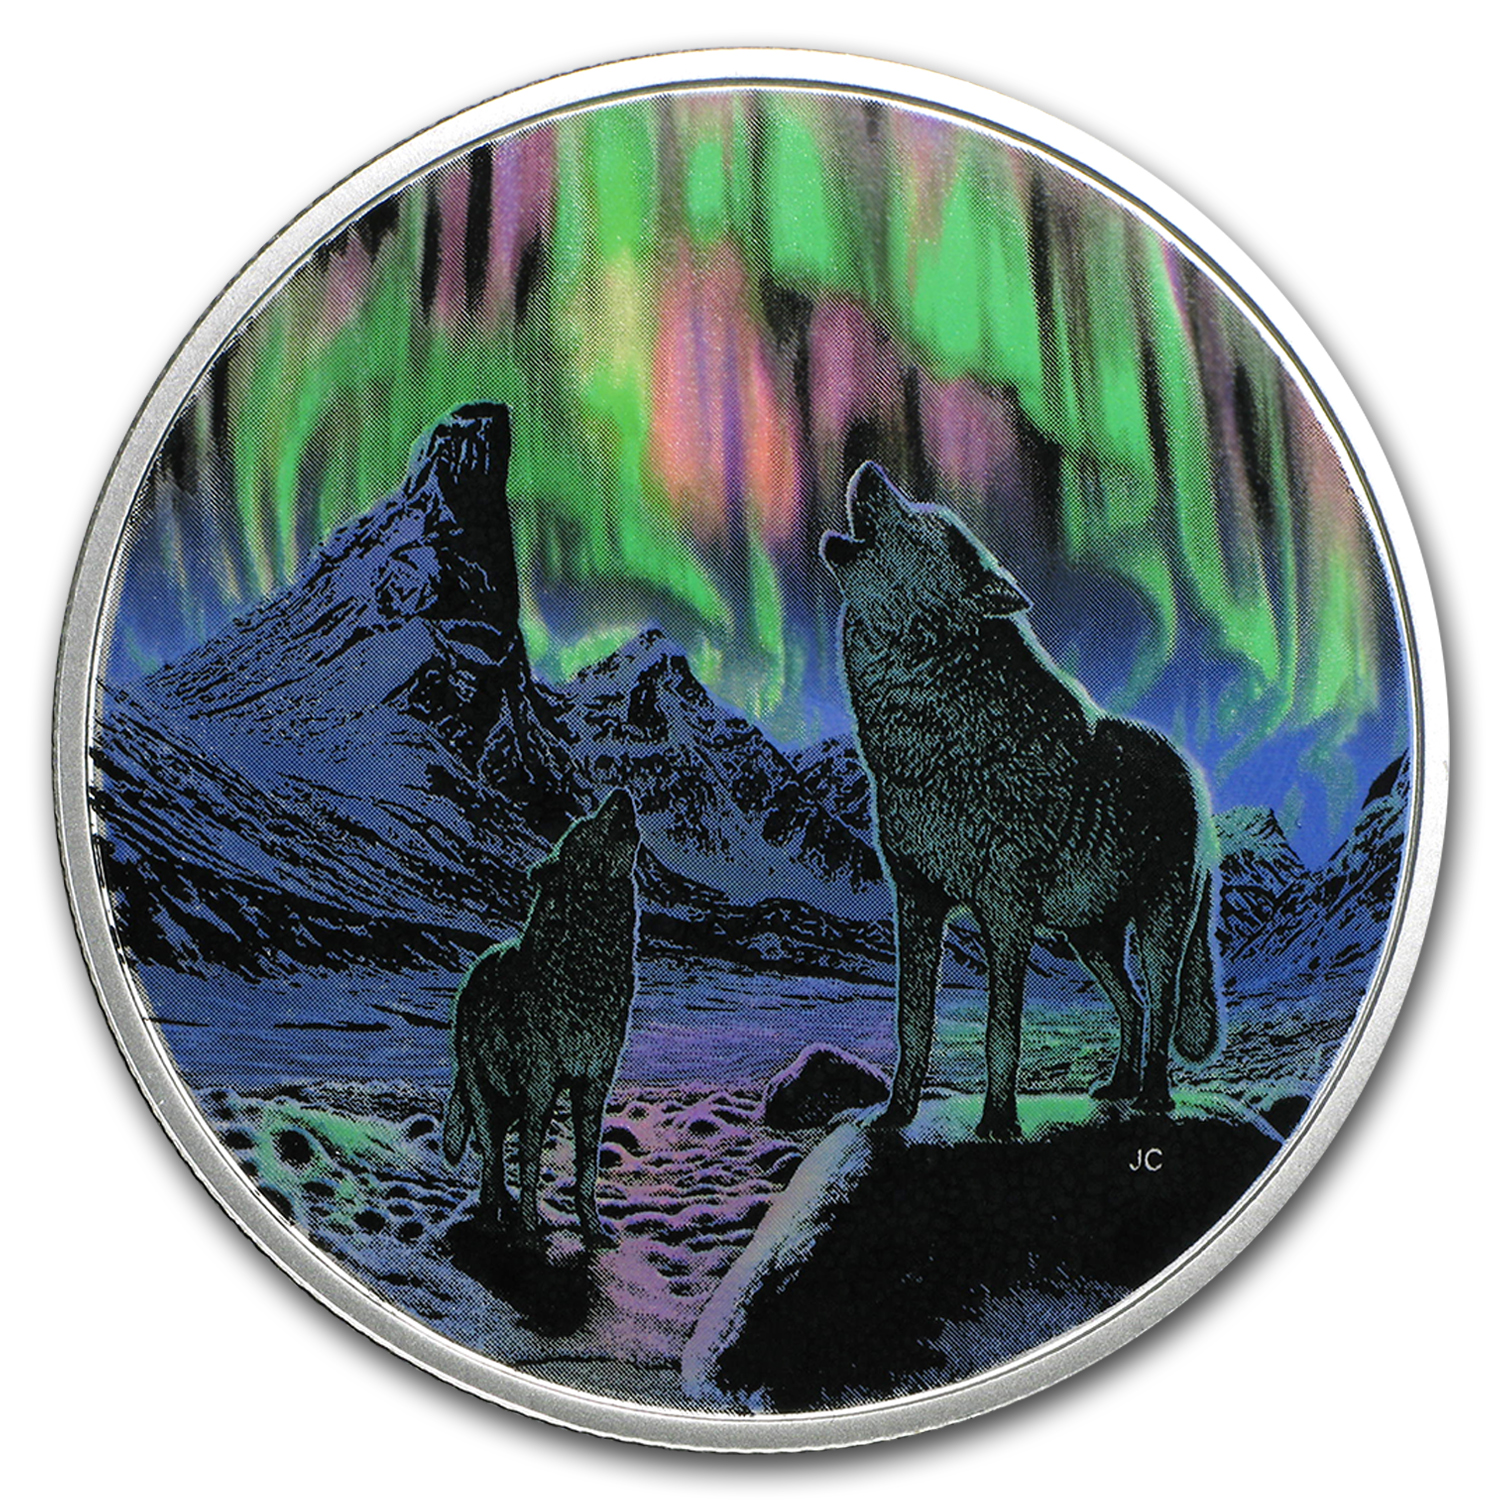 2016 Canada 2 oz Silver $30 Northern Lights: Wolves in Moonlight